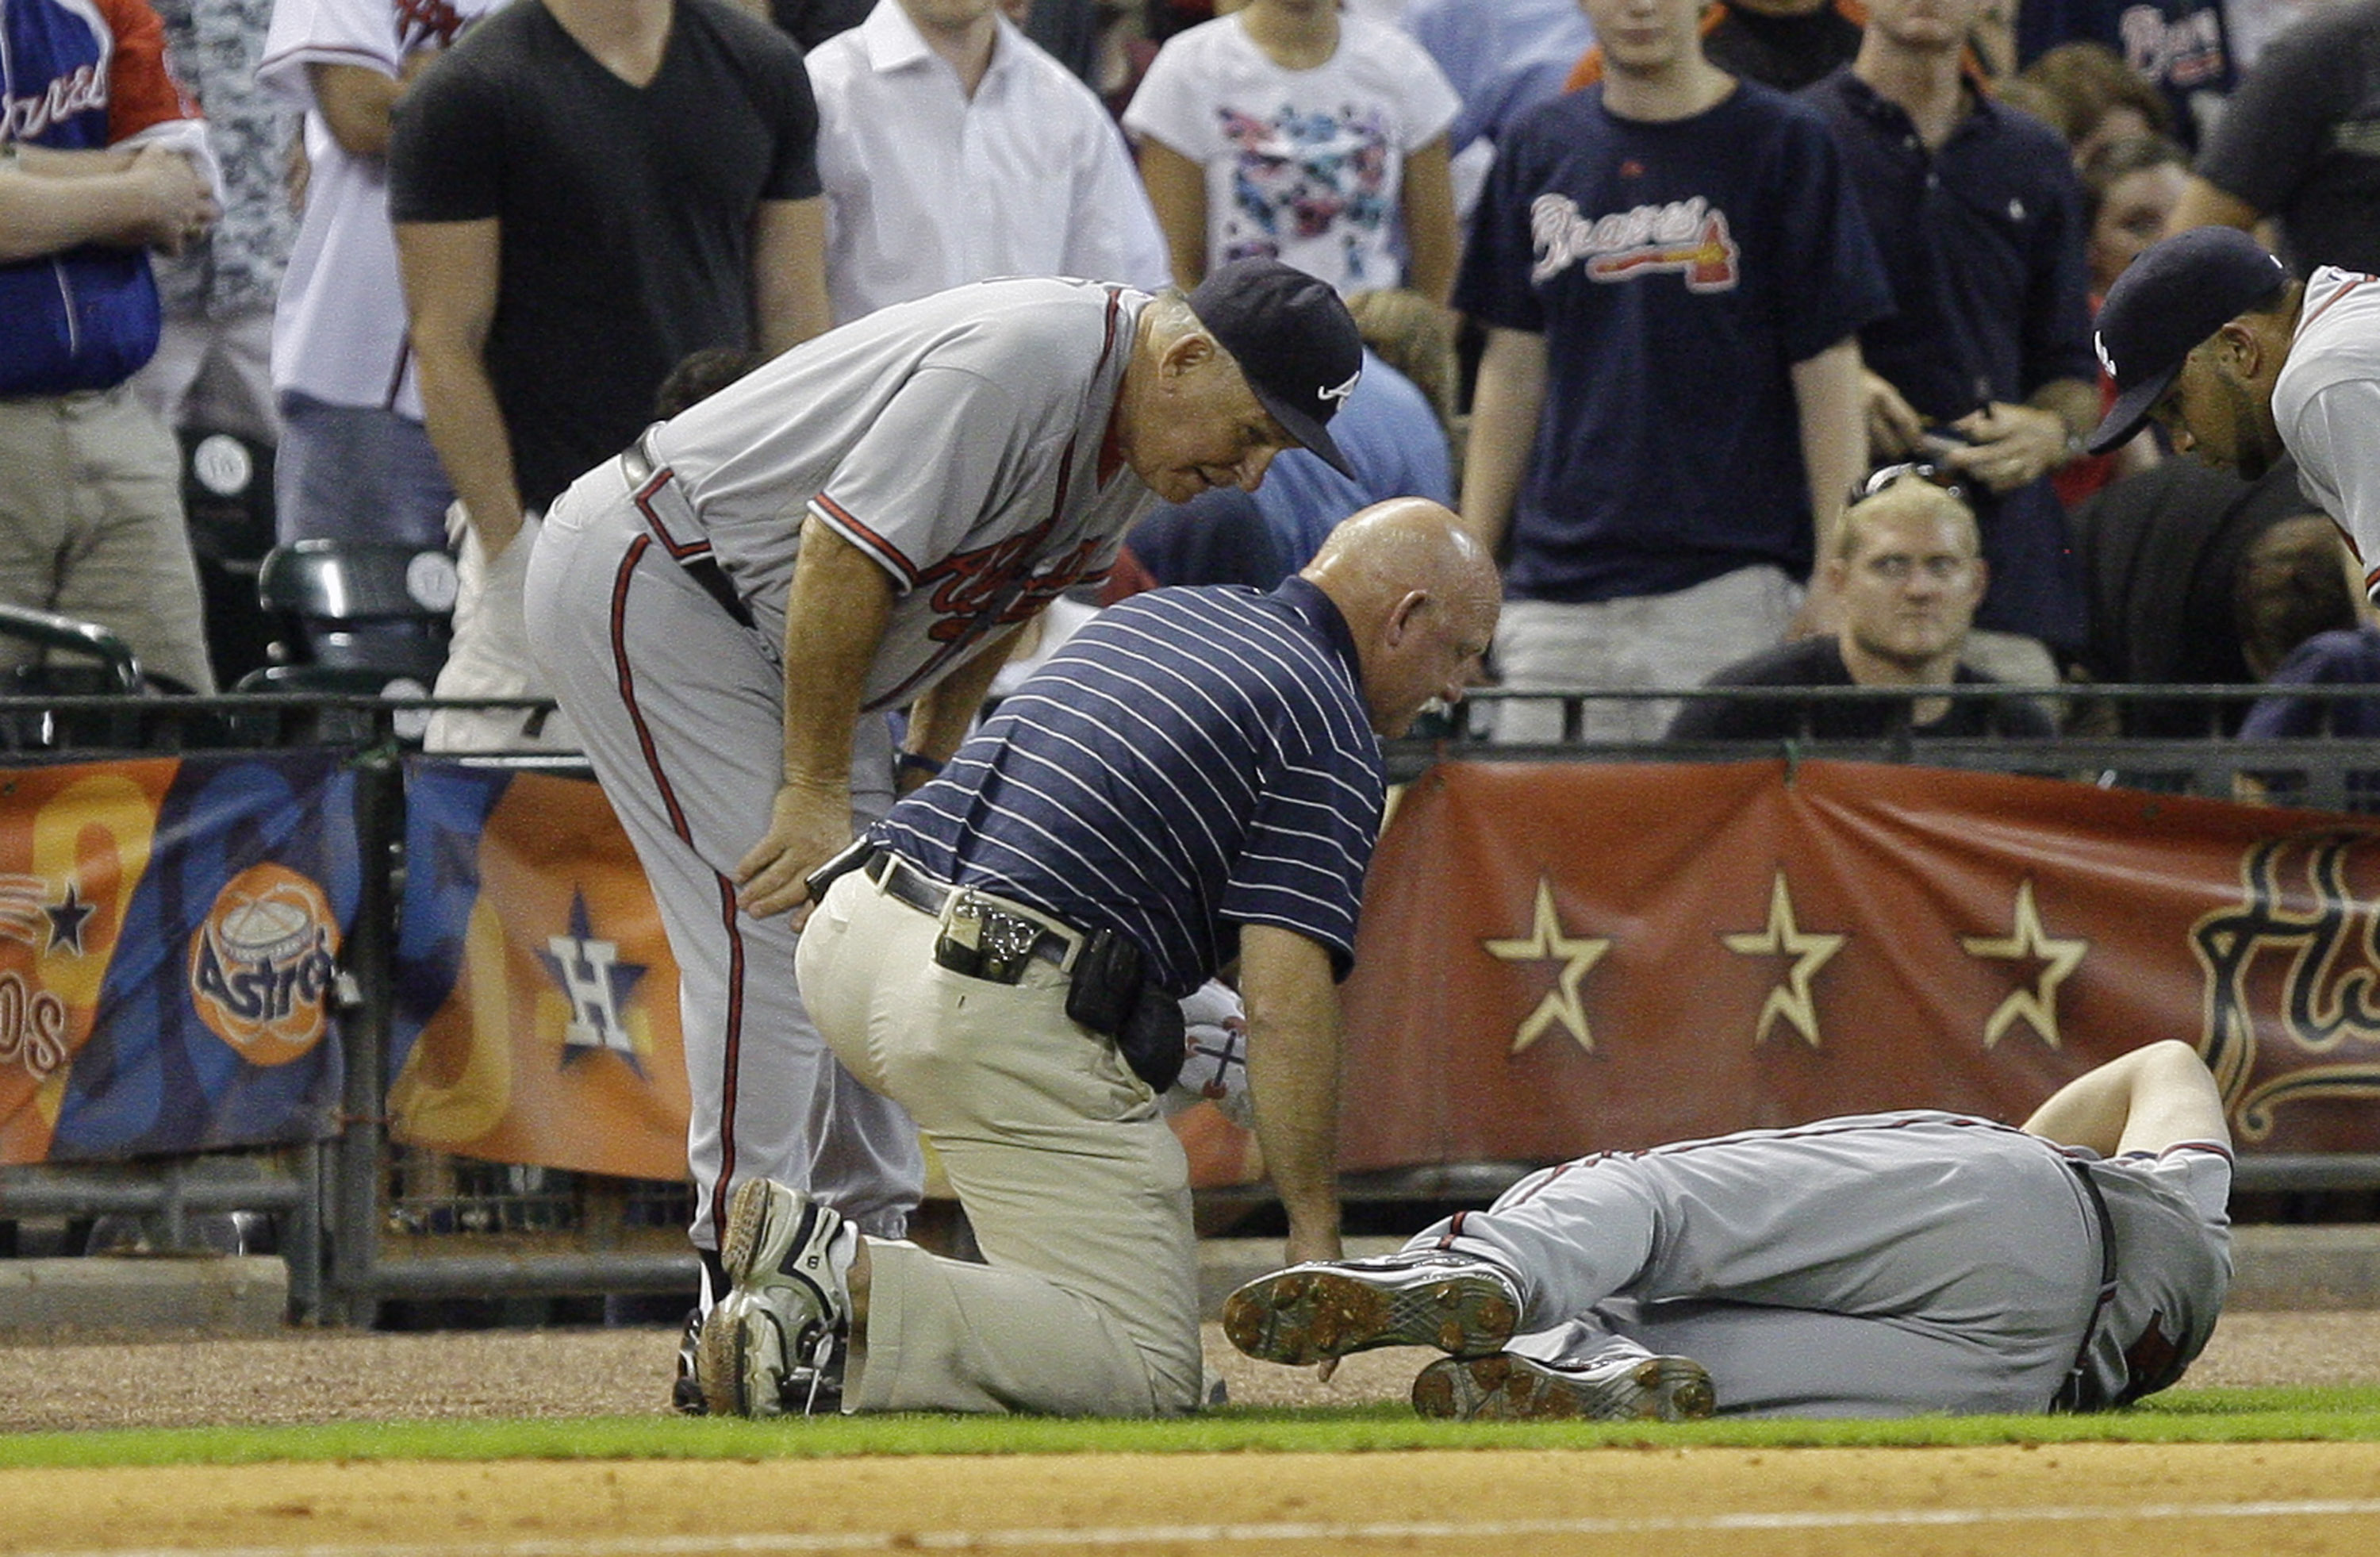 HOUSTON - AUGUST 10:  Third baseman Chipper Jones #10 of the Atlanta Braves is tended to by the trainer and manager Bobby Cox after coming down awkardly behind the base at Minute Maid Park on August 10, 2010 in Houston, Texas. Jones left the game after in